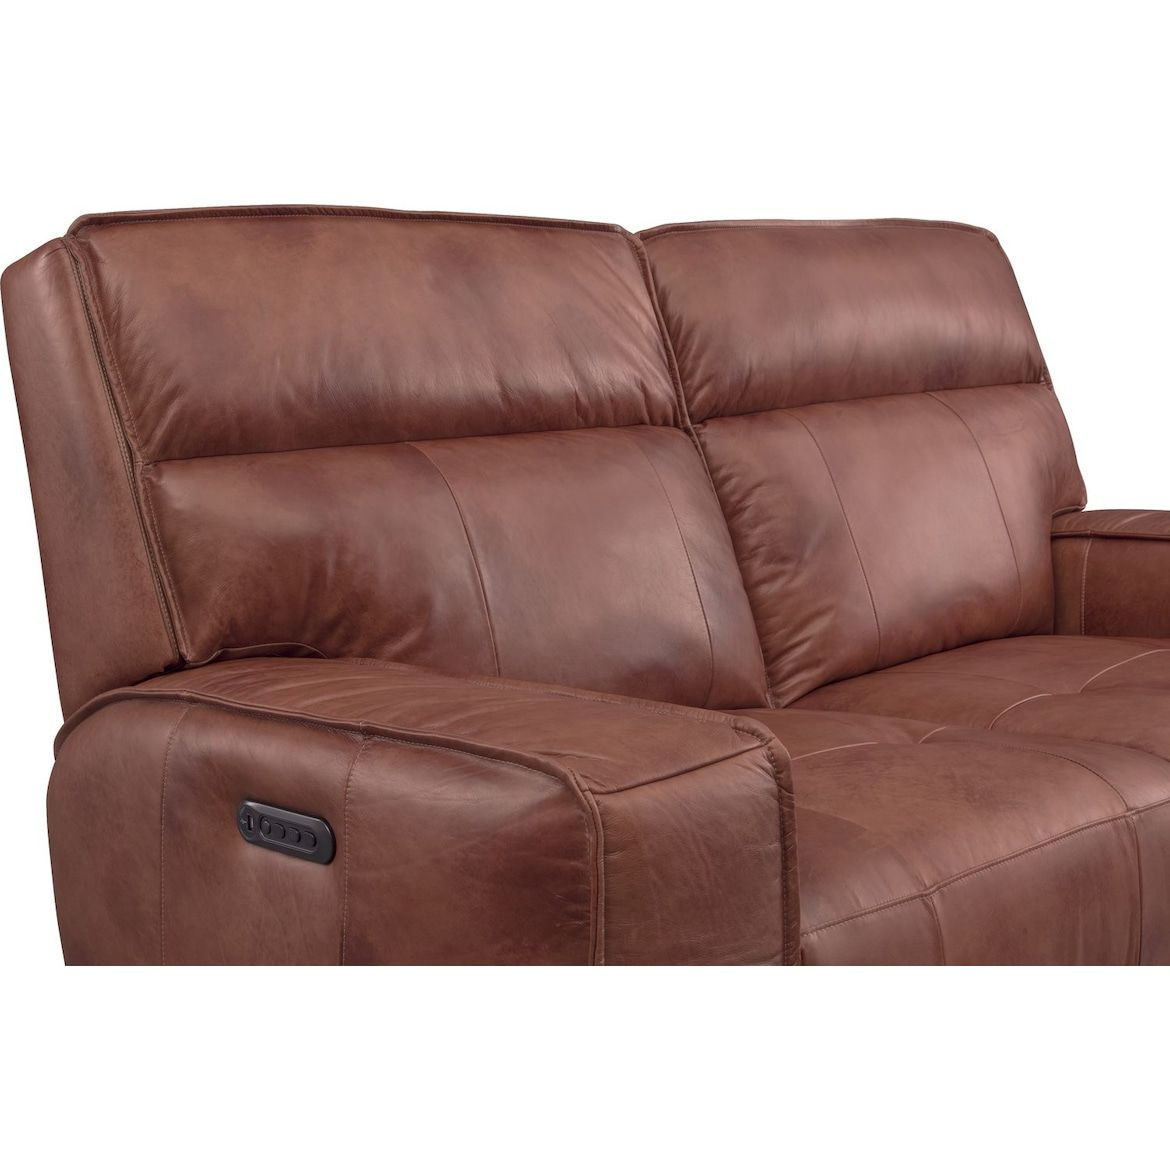 Bradley Triple Power Reclining Sofa, Loveseat And Recliner Throughout Charleston Triple Power Reclining Sofas (View 2 of 15)